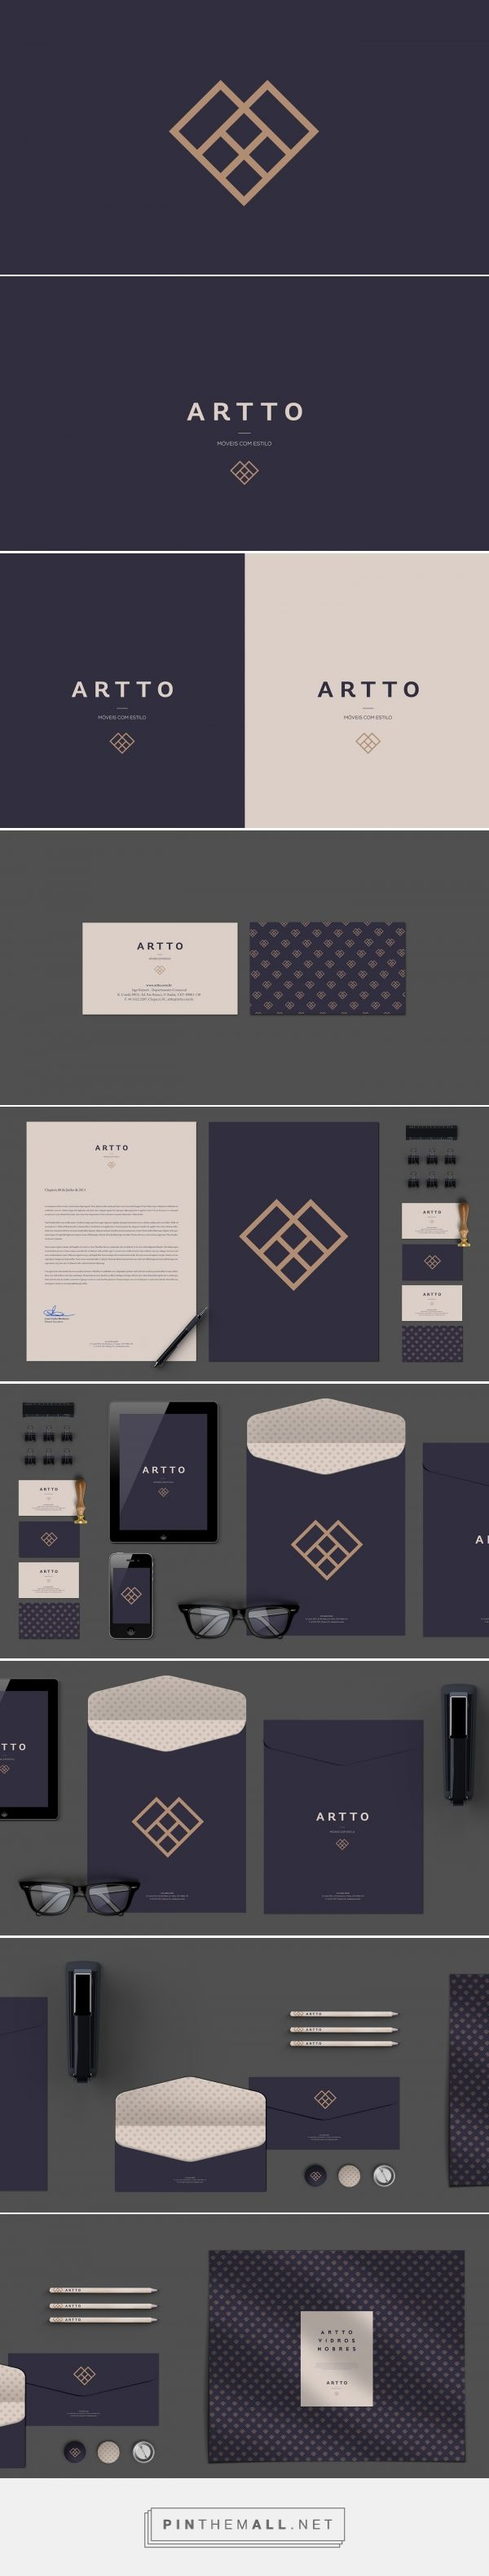 Artto Móveis com estilo Branding by Estudio Alice | Fivestar Branding Agency – Design and Branding Agency & Curated Inspiration Gallery